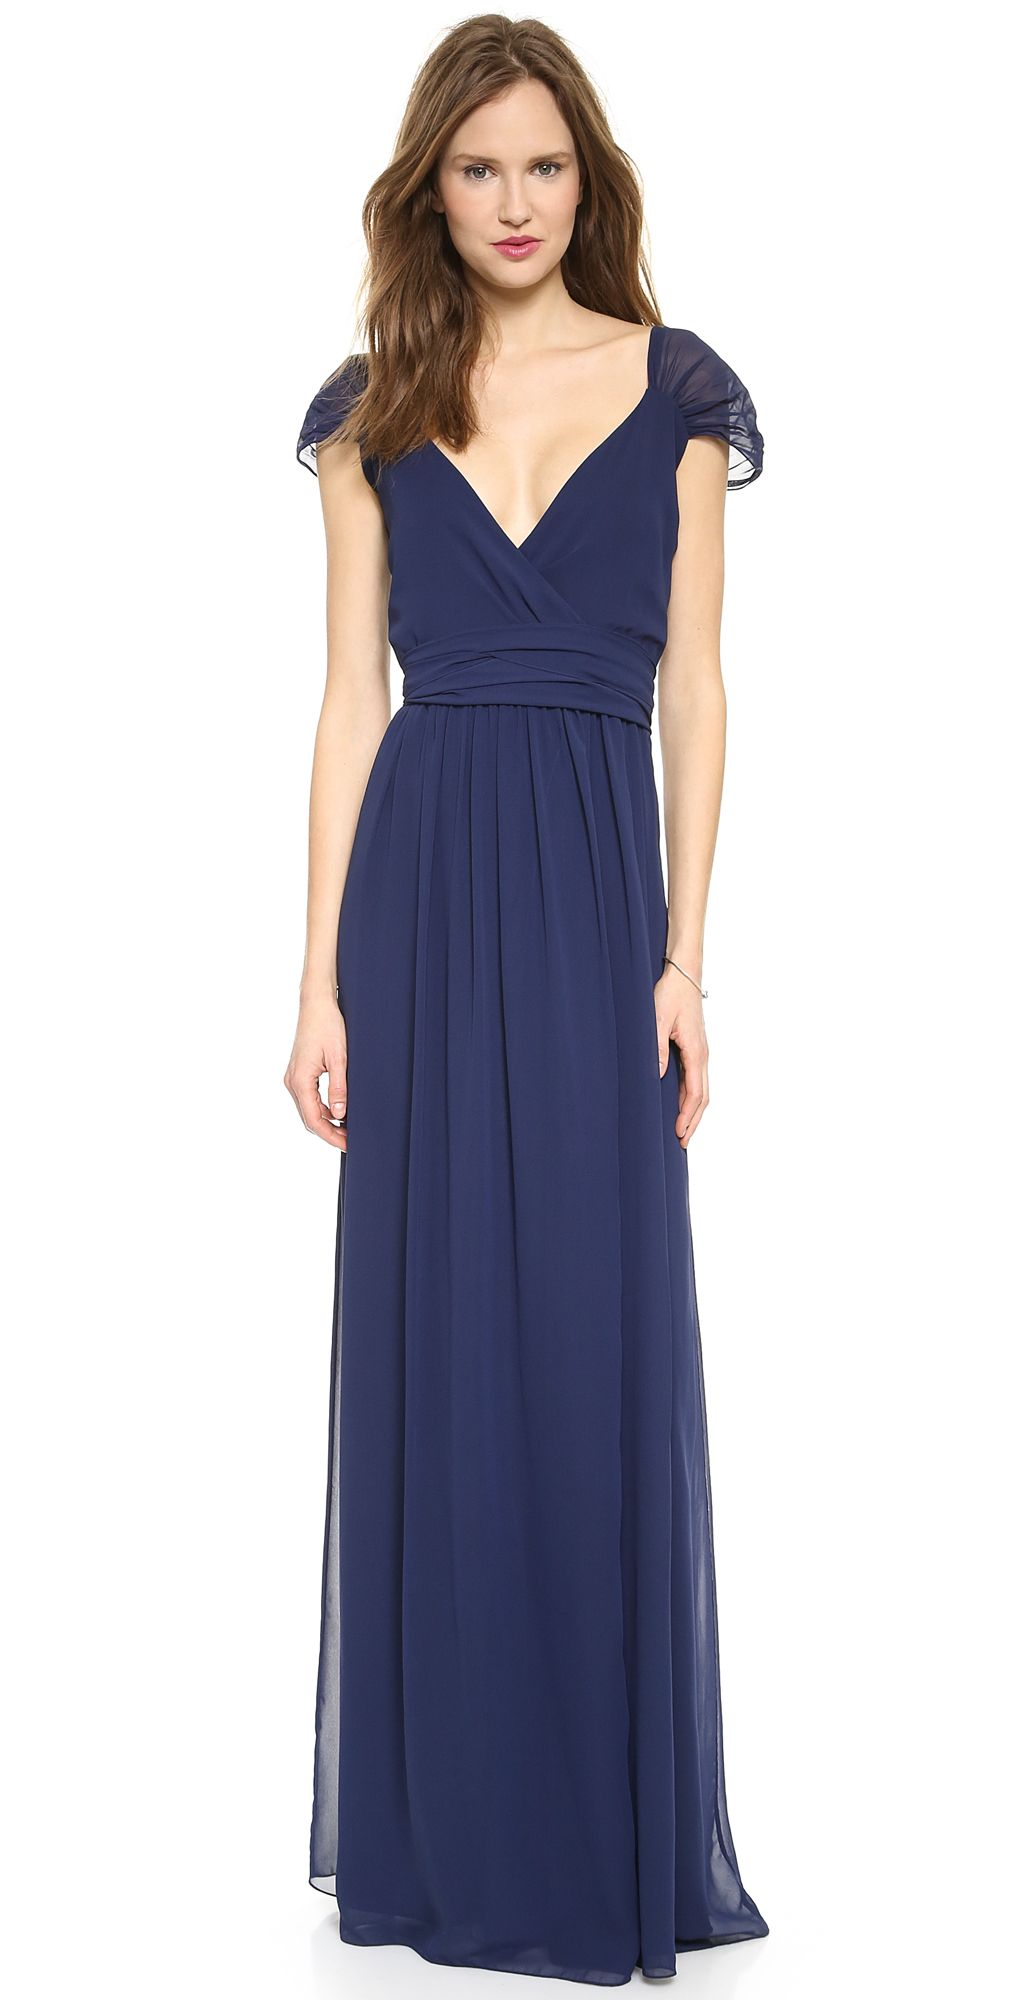 Joanna august cap sleeve dress in blue 27500 bella bridal parties ombrellifo Image collections